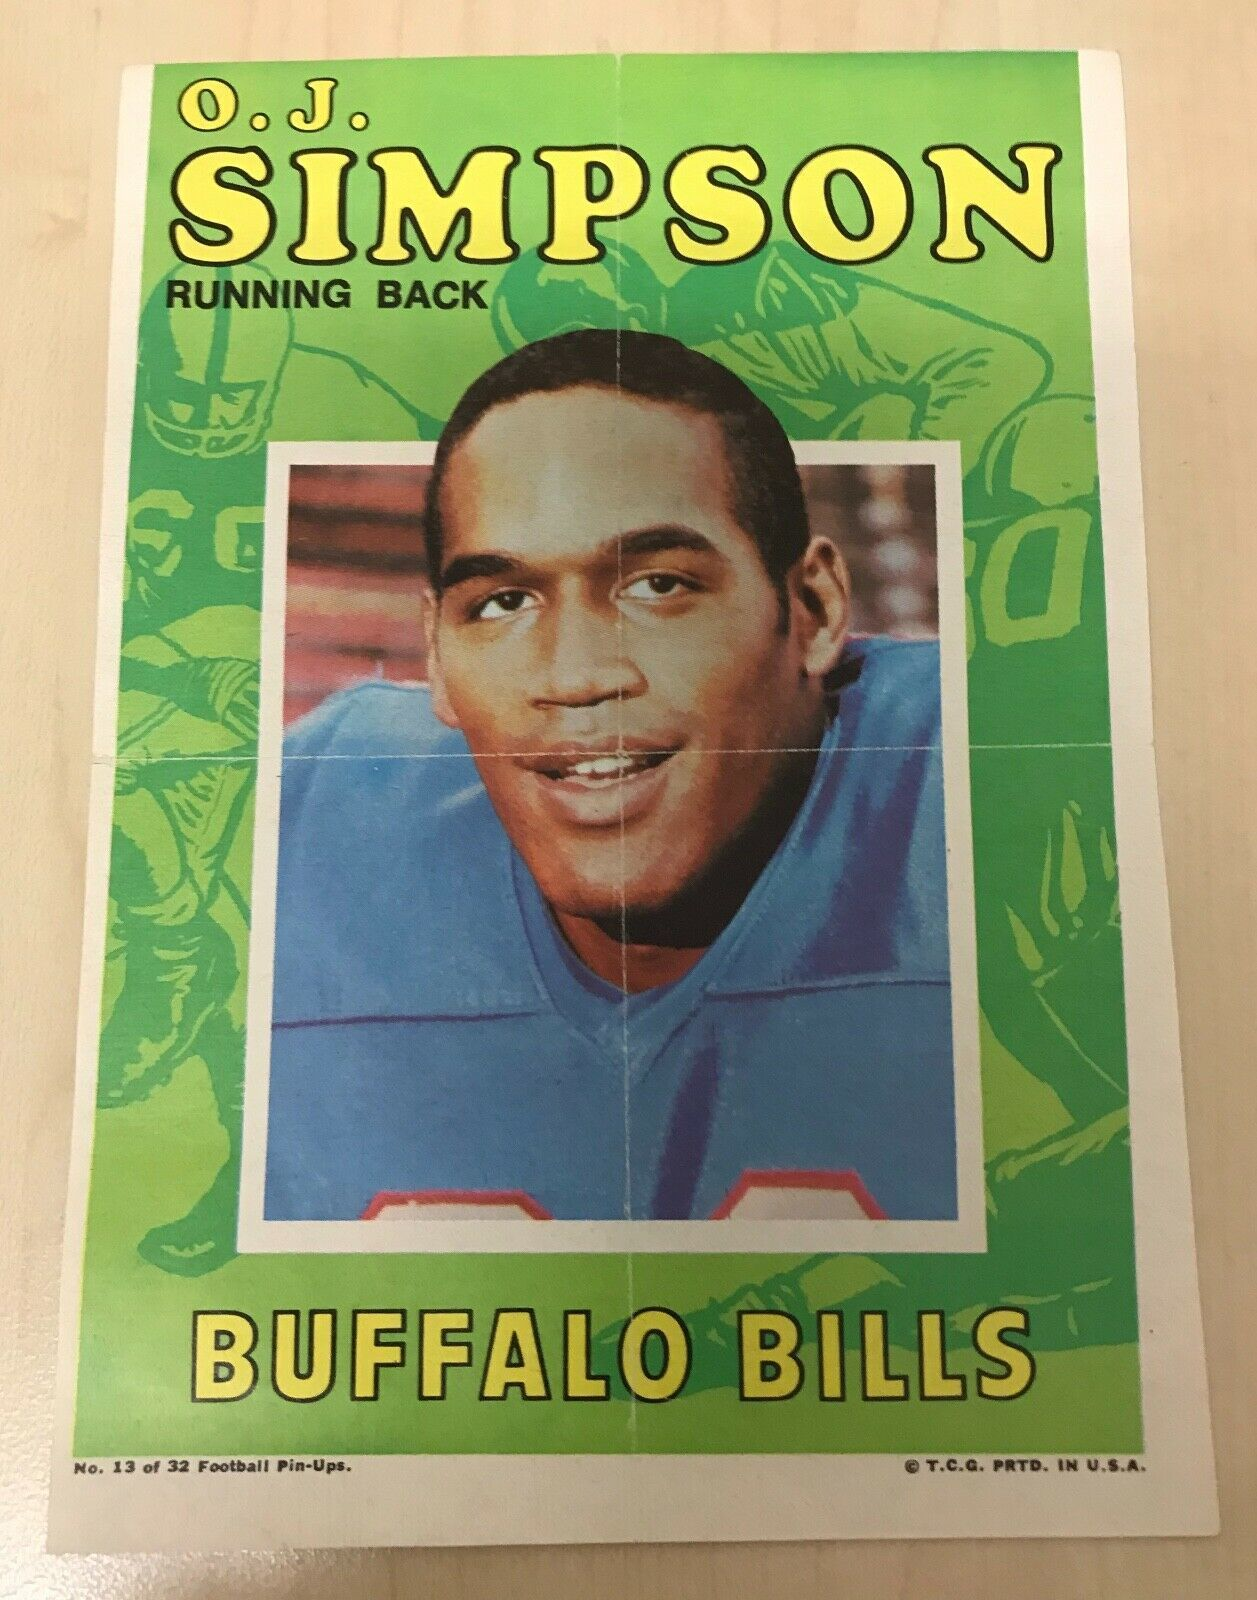 1971 Topps Football Pin-Ups #13 OJ Simpson Buffalo Bills